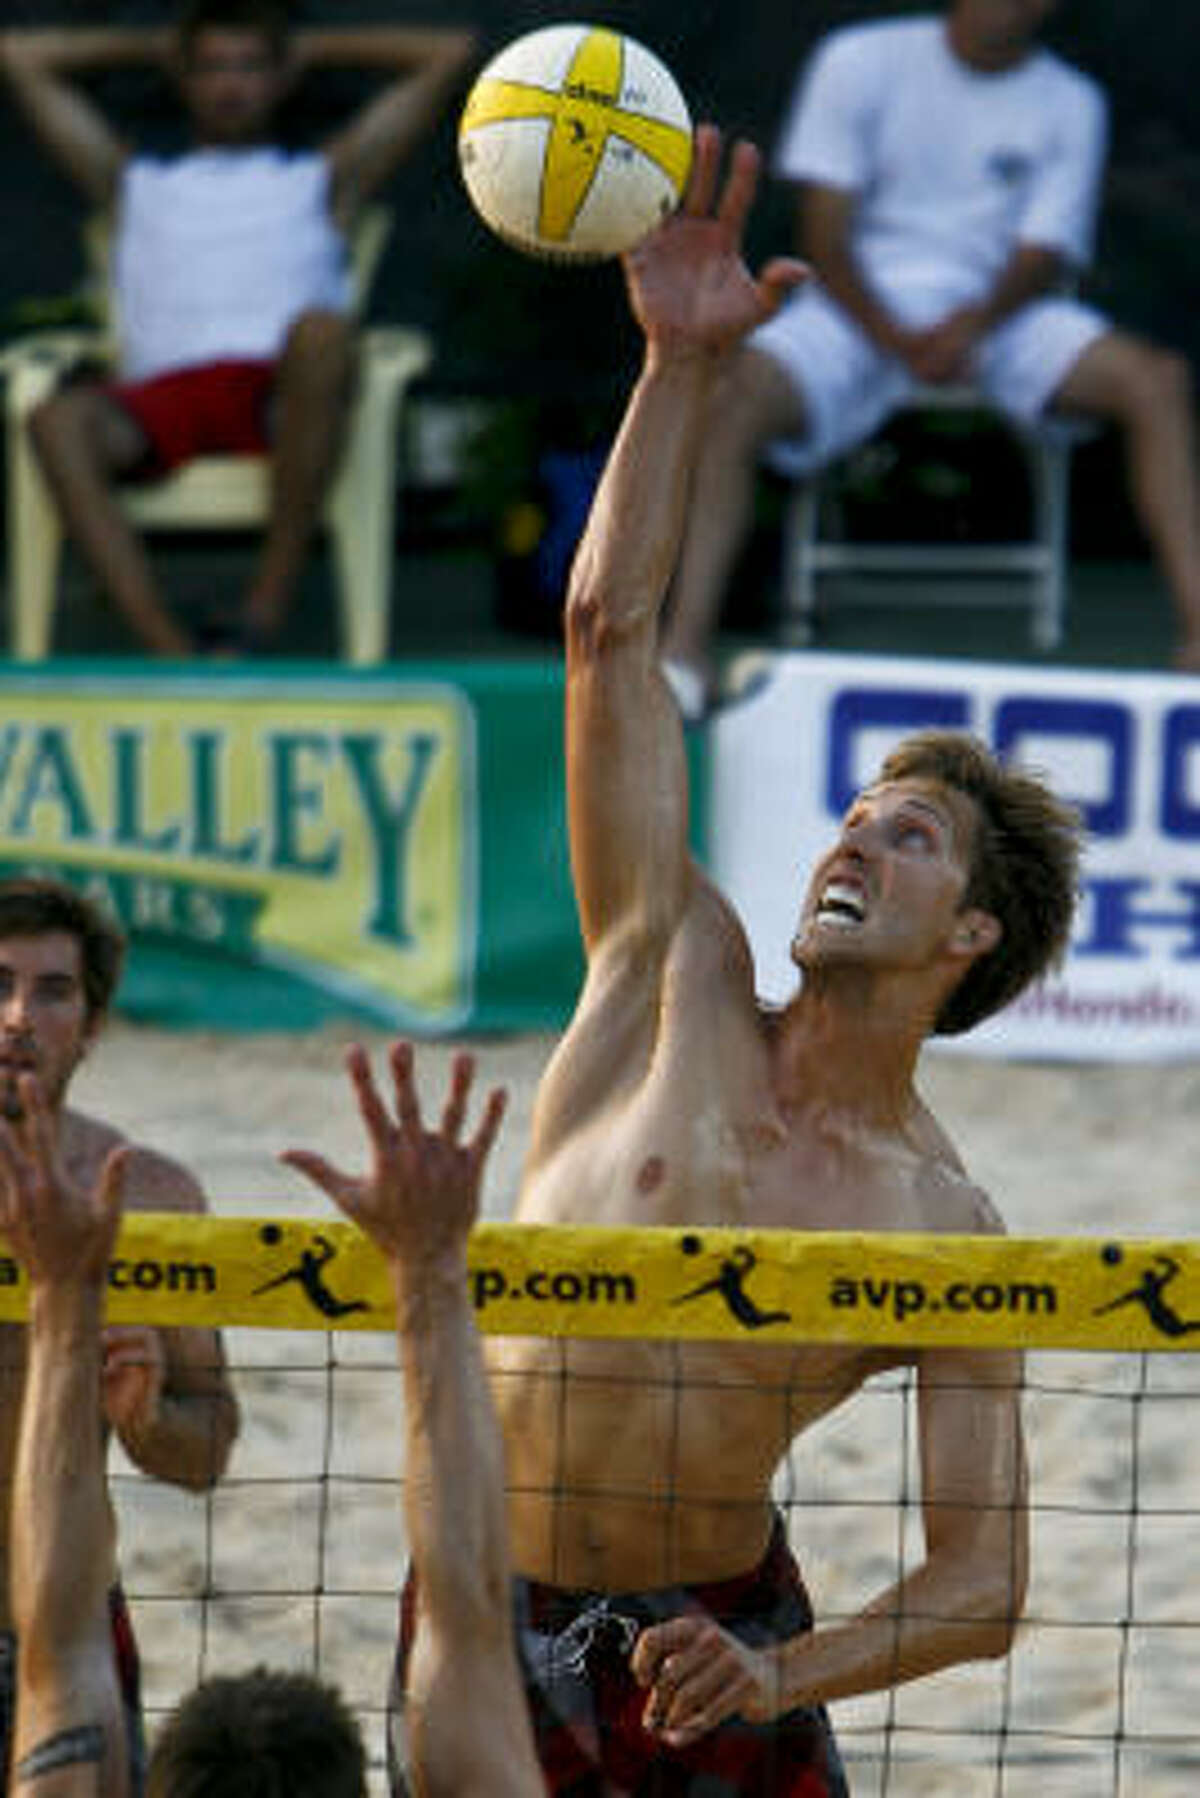 Will Strickland goes up for a spike as he and his partner Aaron Wachtfogel battle against Russ Marchewka and Evan Engle.